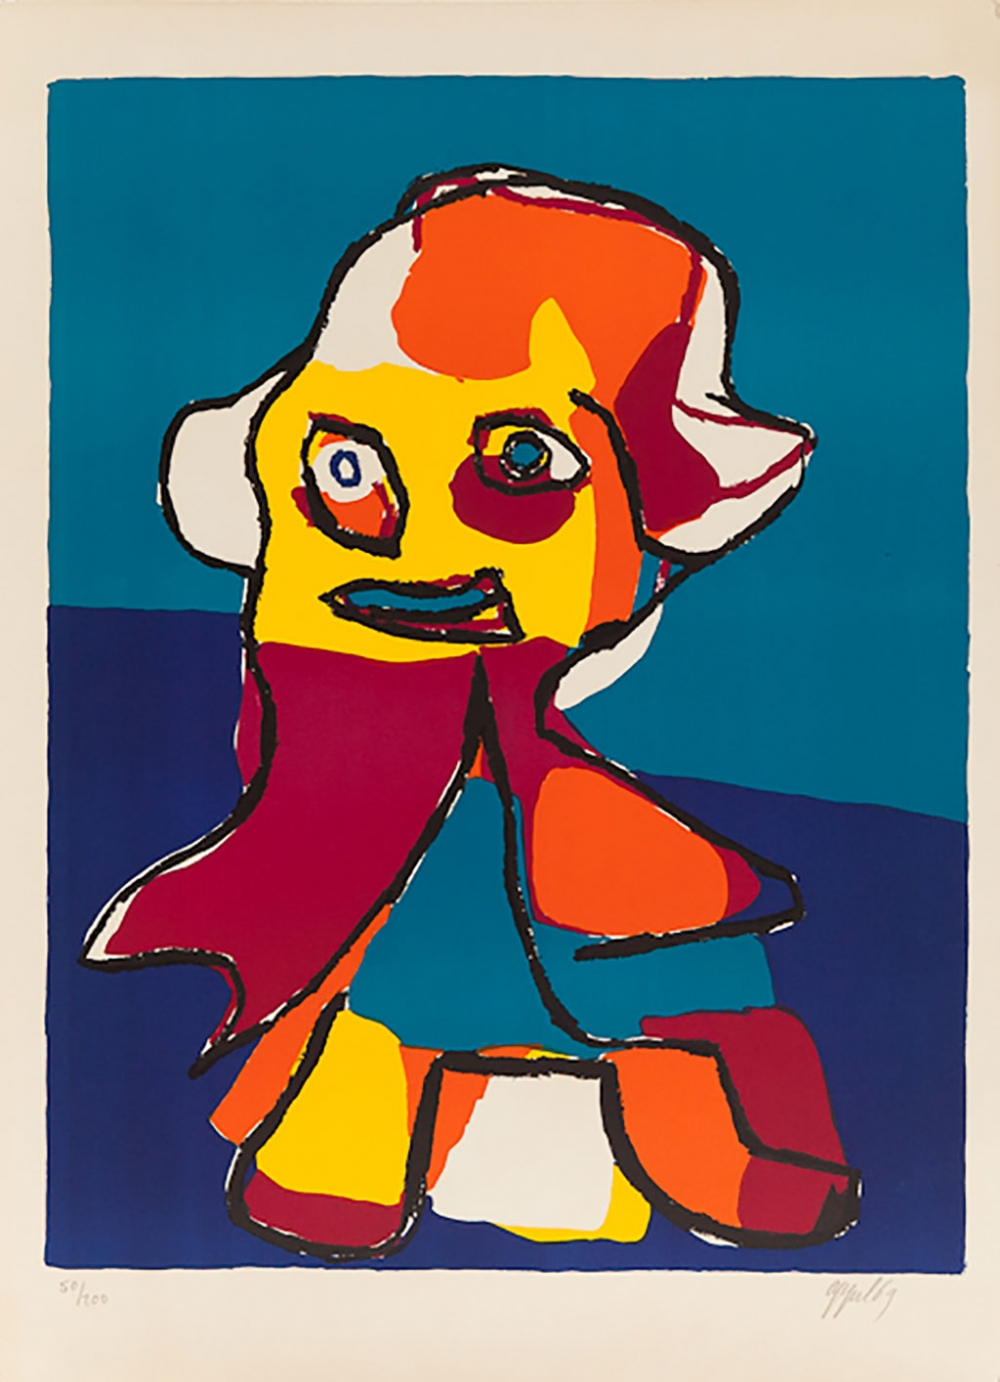 Karel-Appel---Little-boy_1000_1382.jpg